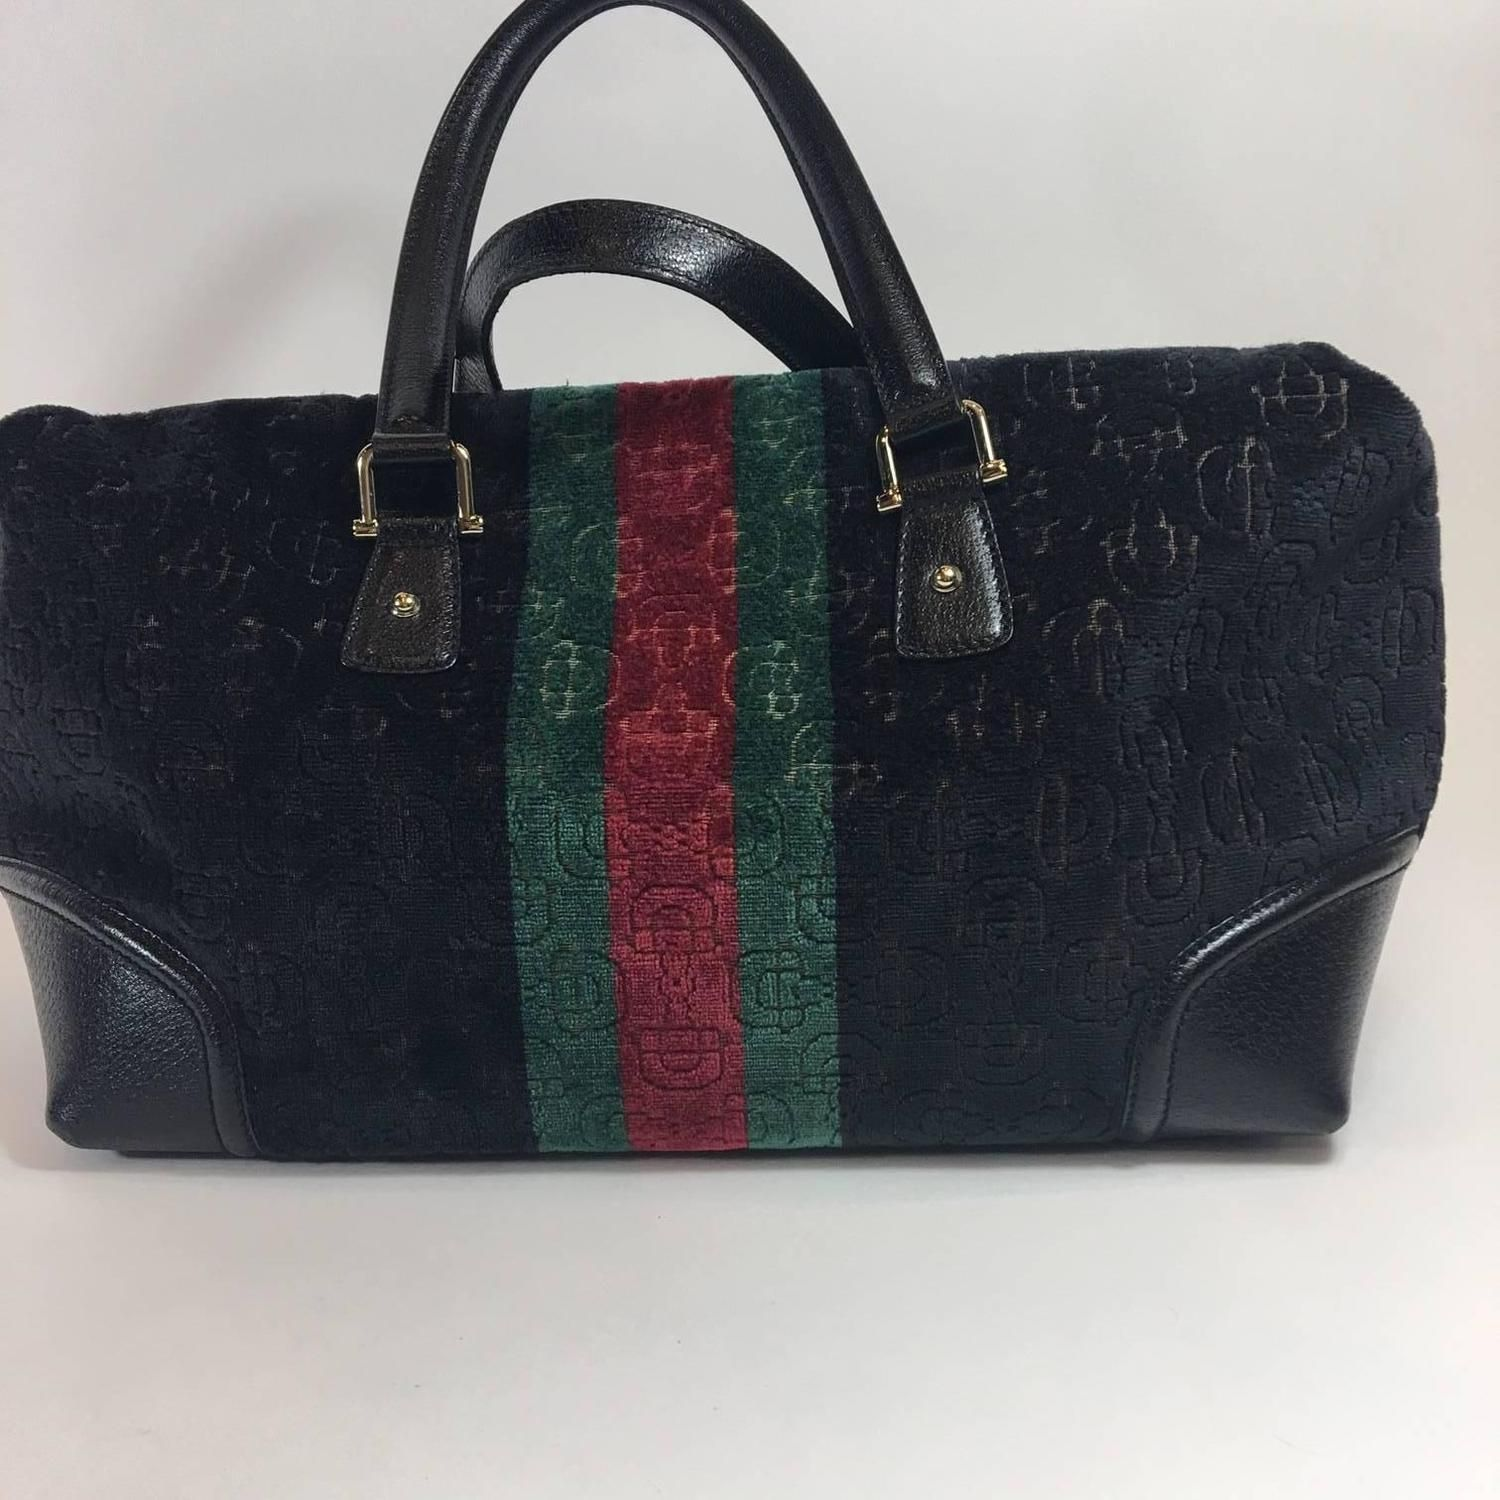 9fc50050625a Gucci Black Velvet Treasure Boston Bag | From a collection of rare vintage  top handle bags